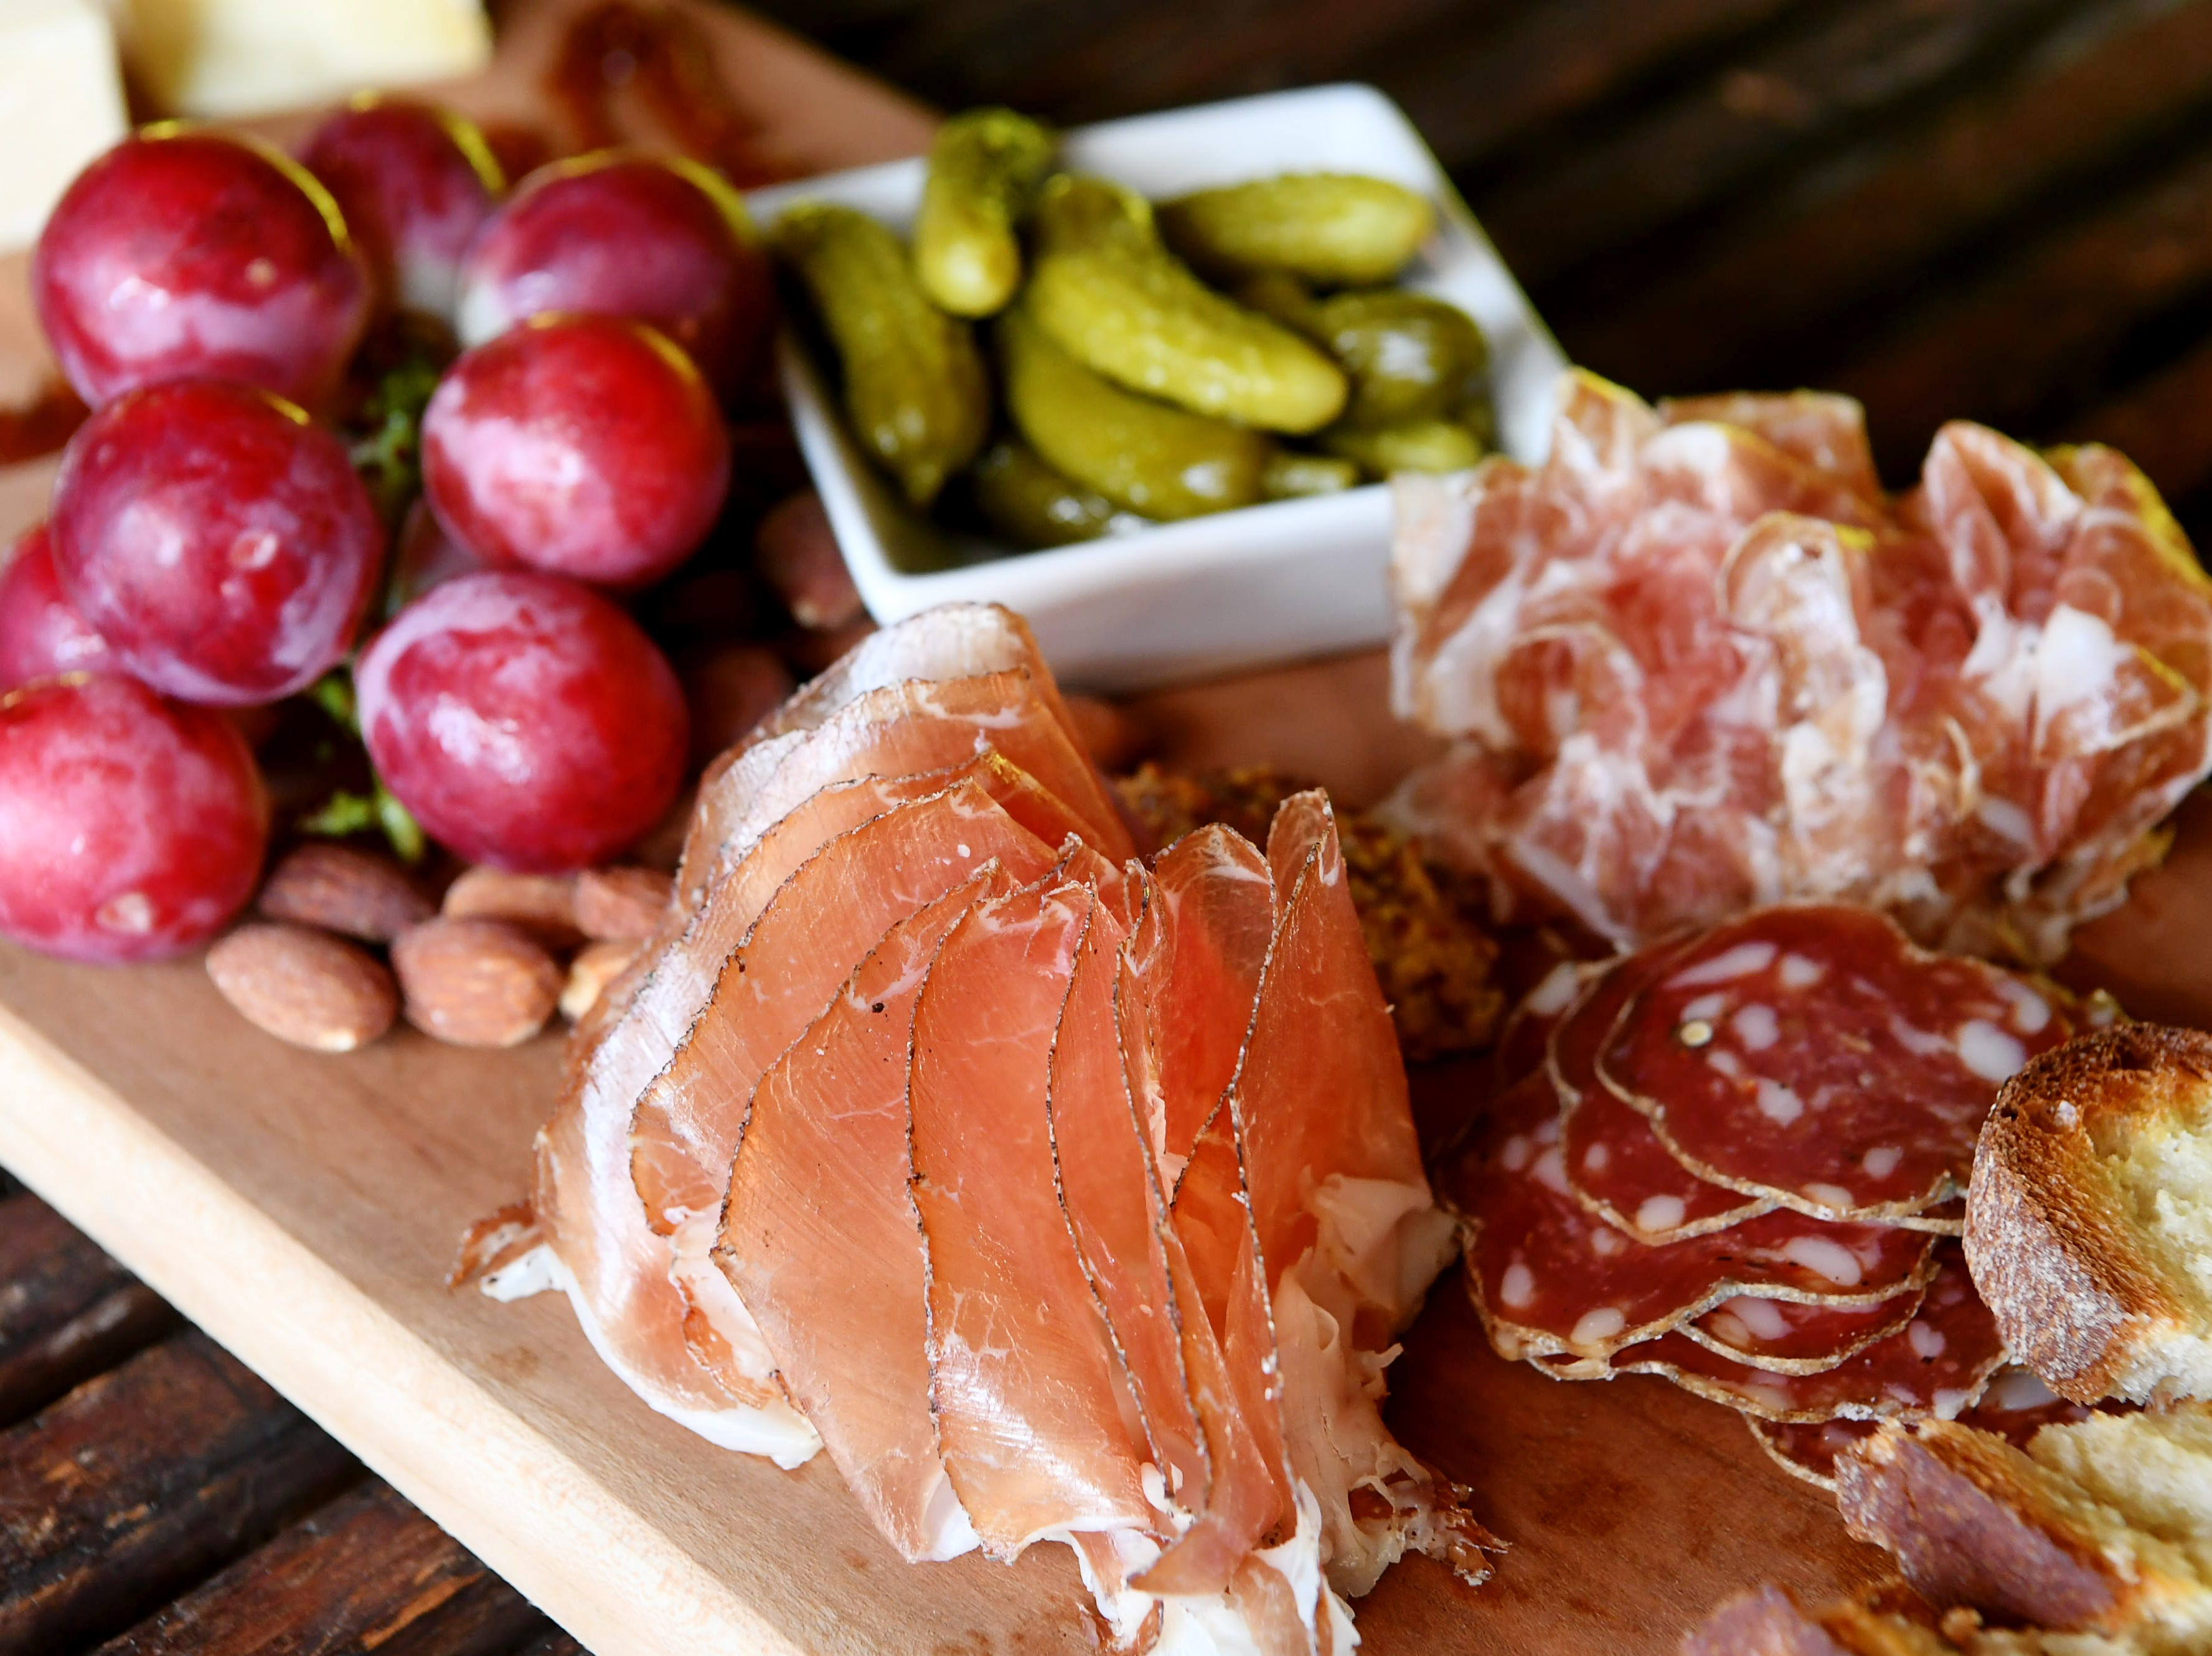 An assortment of charcuterie and cheese at District Wine Bar in the River Arts District Feb. 7, 2019.